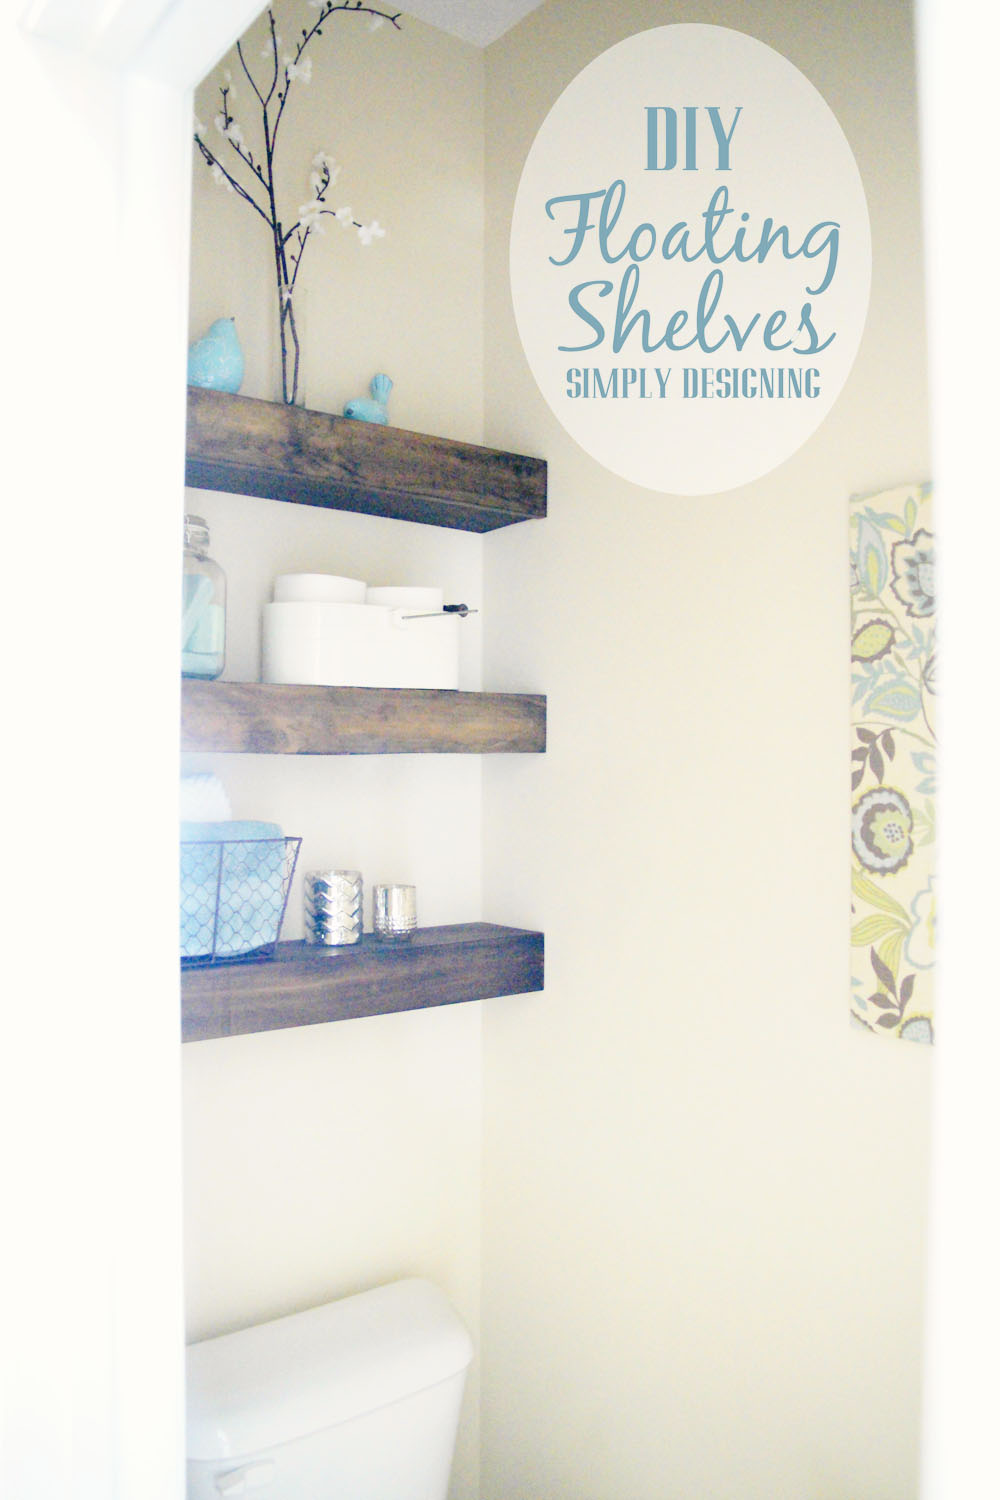 DIY Built-In Floating Shelves | how to build floating shelves - these make a perfect shelf for a bathroom or other small space |  #DIY #shelves #buildit #bathroom